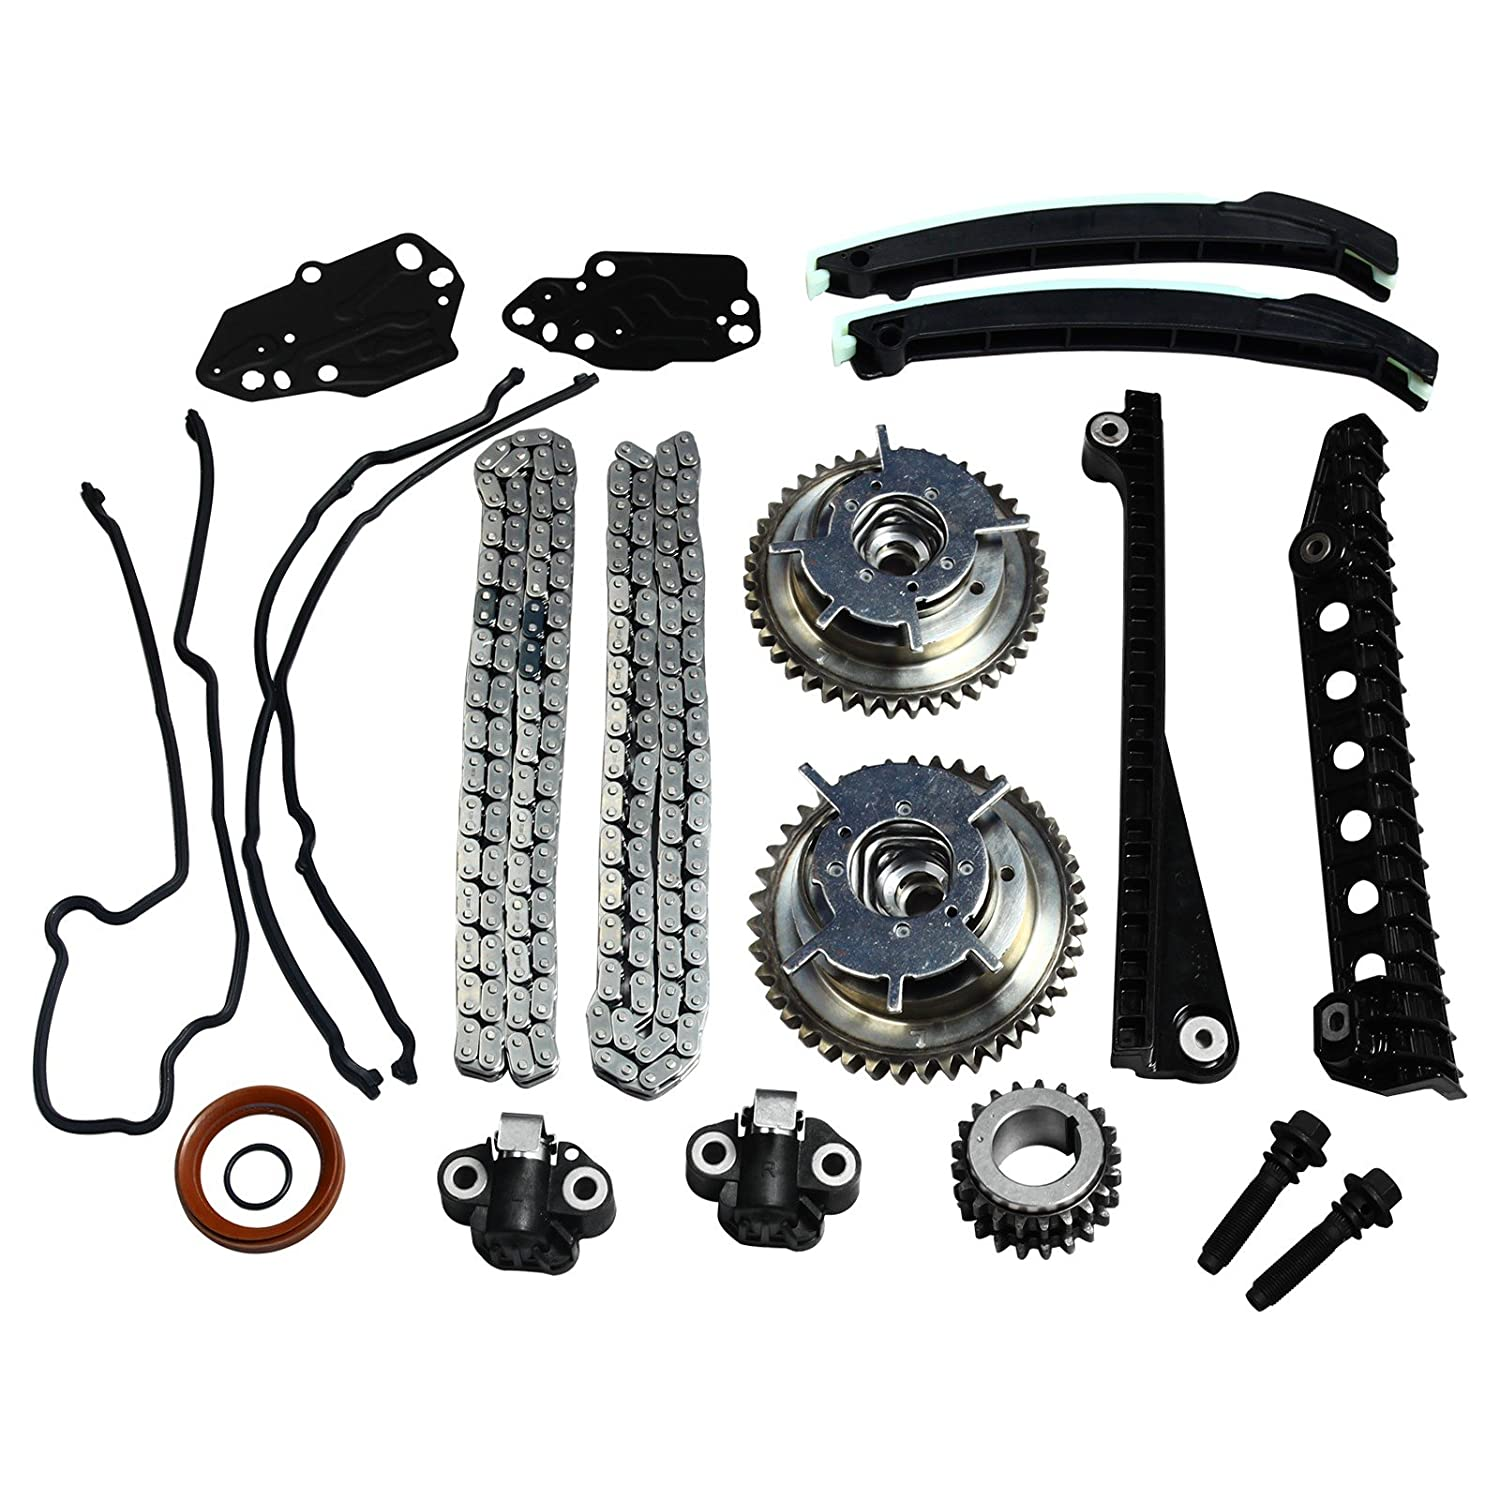 Timing Chain Kit, Cam Phasers (Both Left & Right) & Cover Gasket Fit For 04-08 Ford 5.4L 3V F-150 F-250 & F-350 Super/Lincoln Mark Navigator yjracing